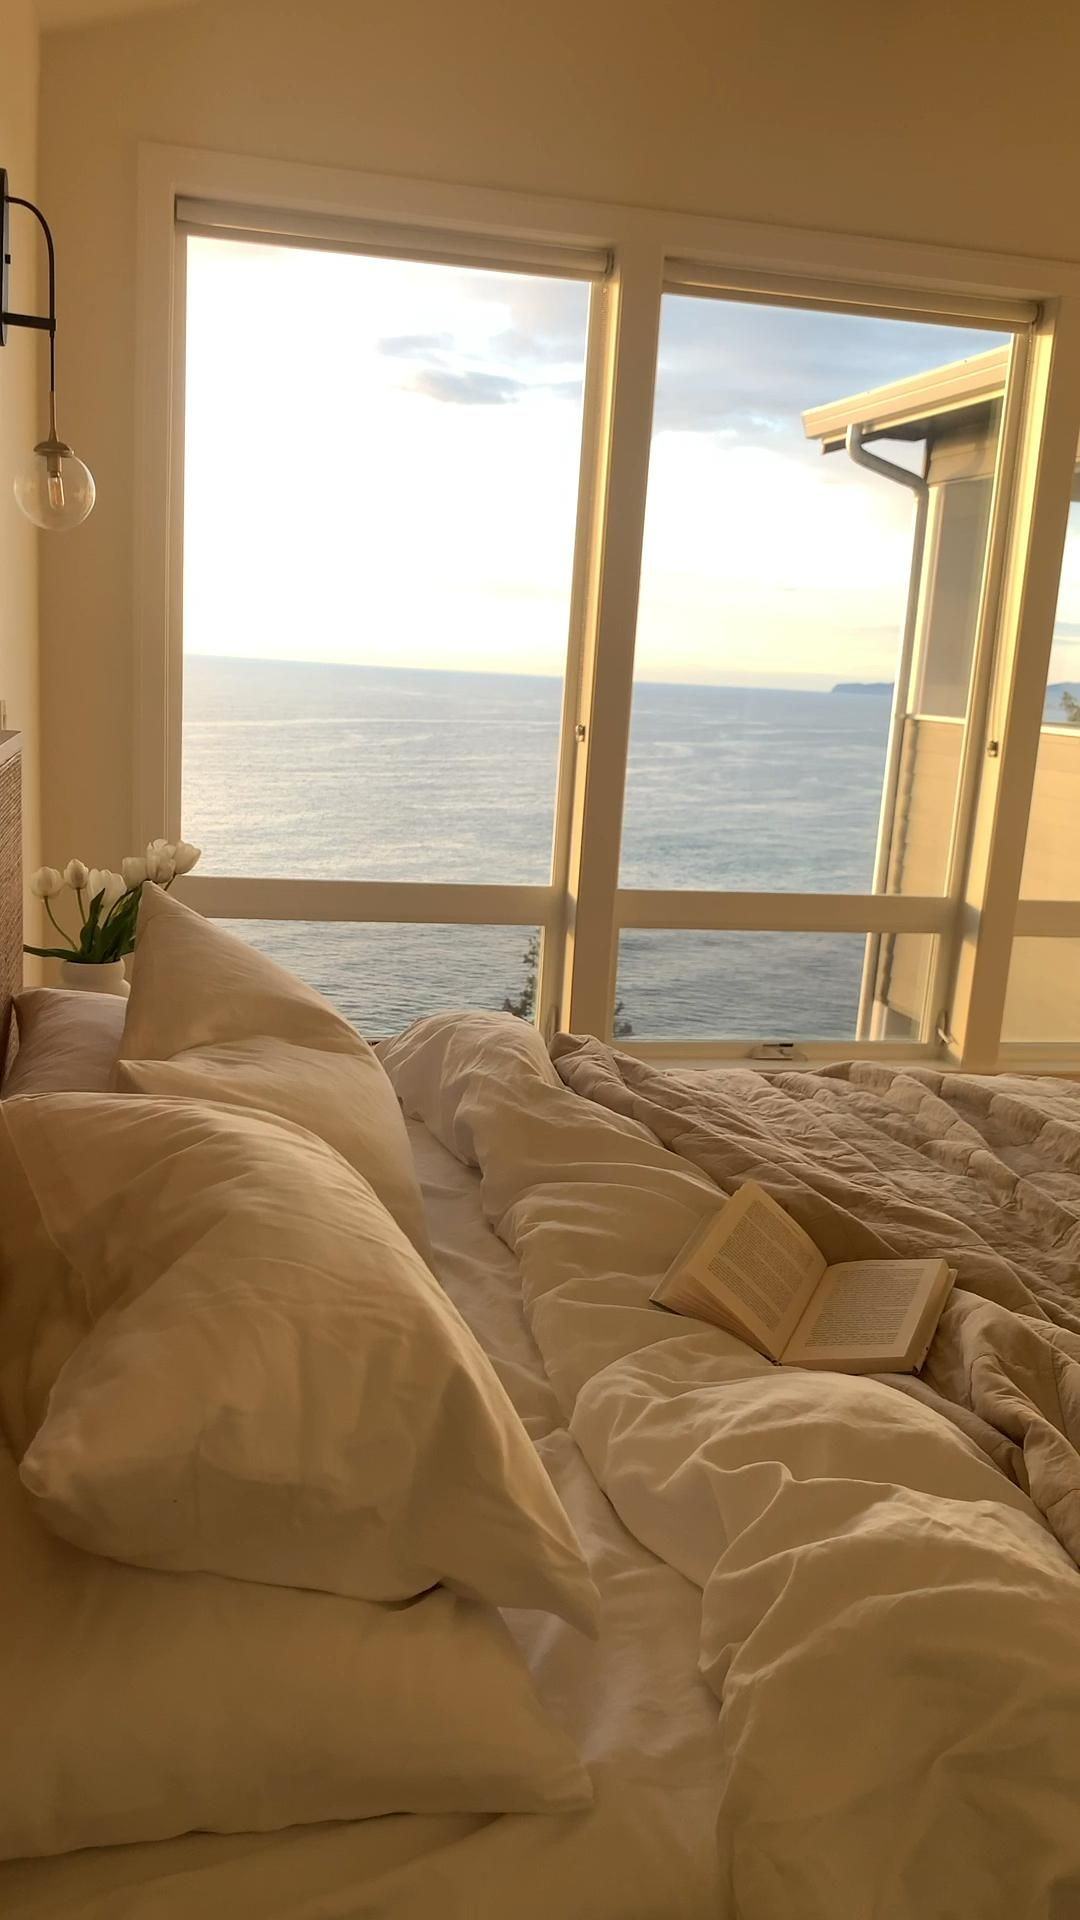 Pearl Master Bedroom showing off the sunset views. Go to www.Neskapebeach.com to book your stay!